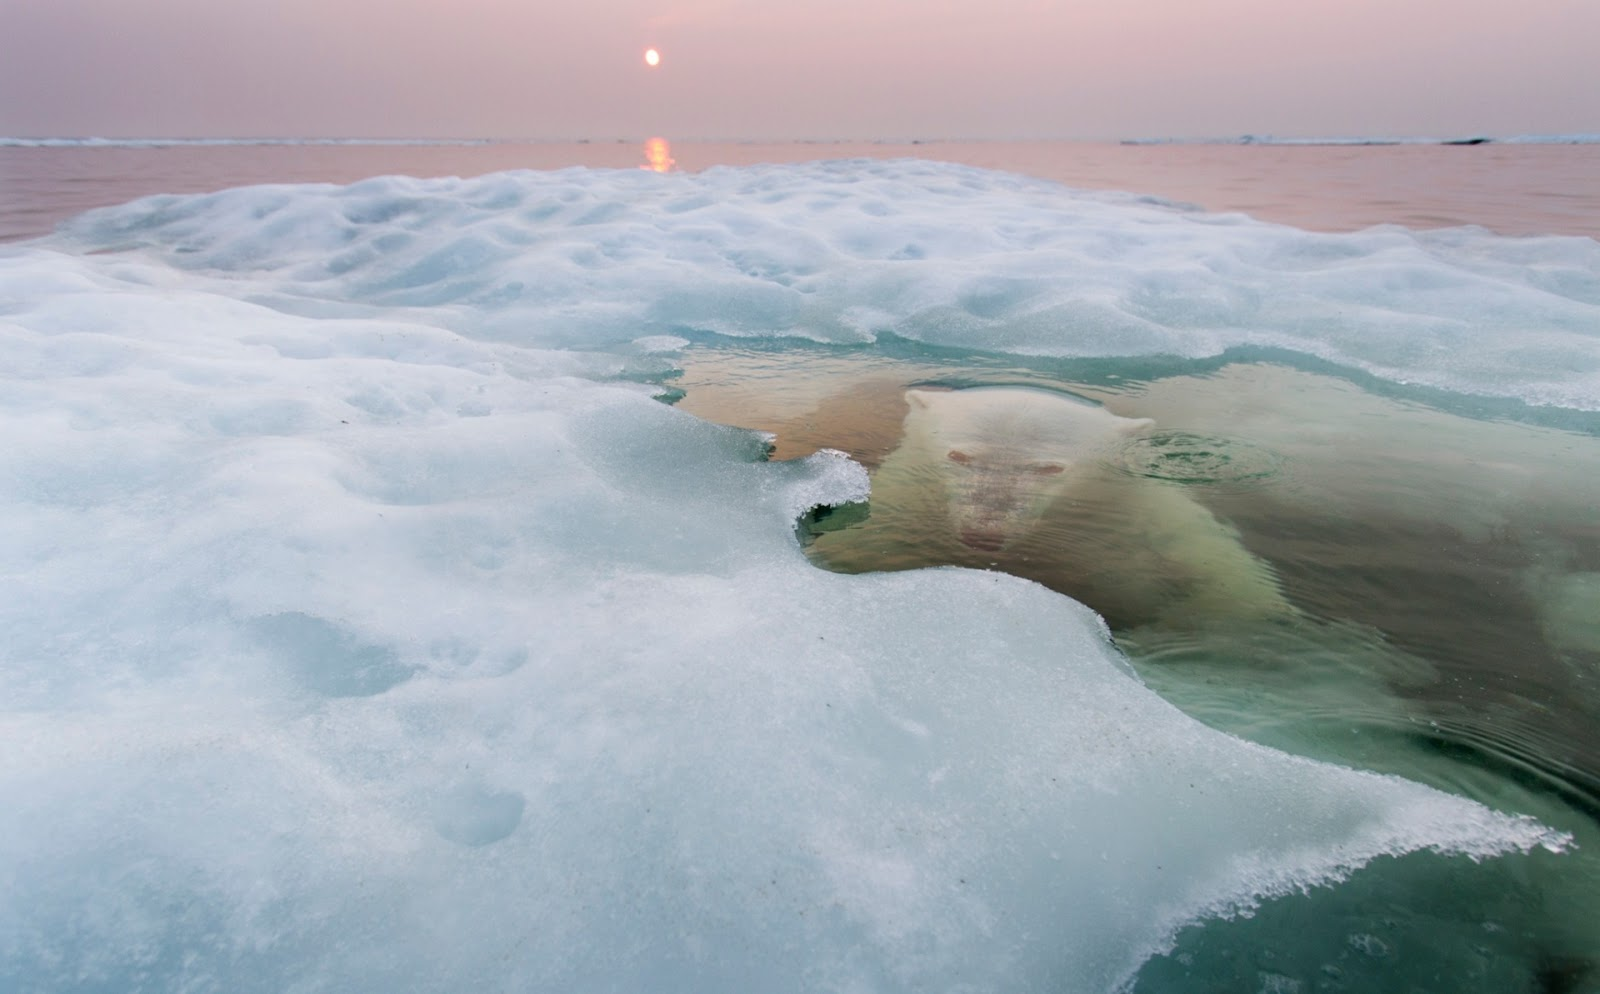 Photograph, Paul Souders: Canada, Manitoba, Churchill, Polar Bear (Ursus maritimus) hides while submerged at edge of melting ice floe on summer evening.